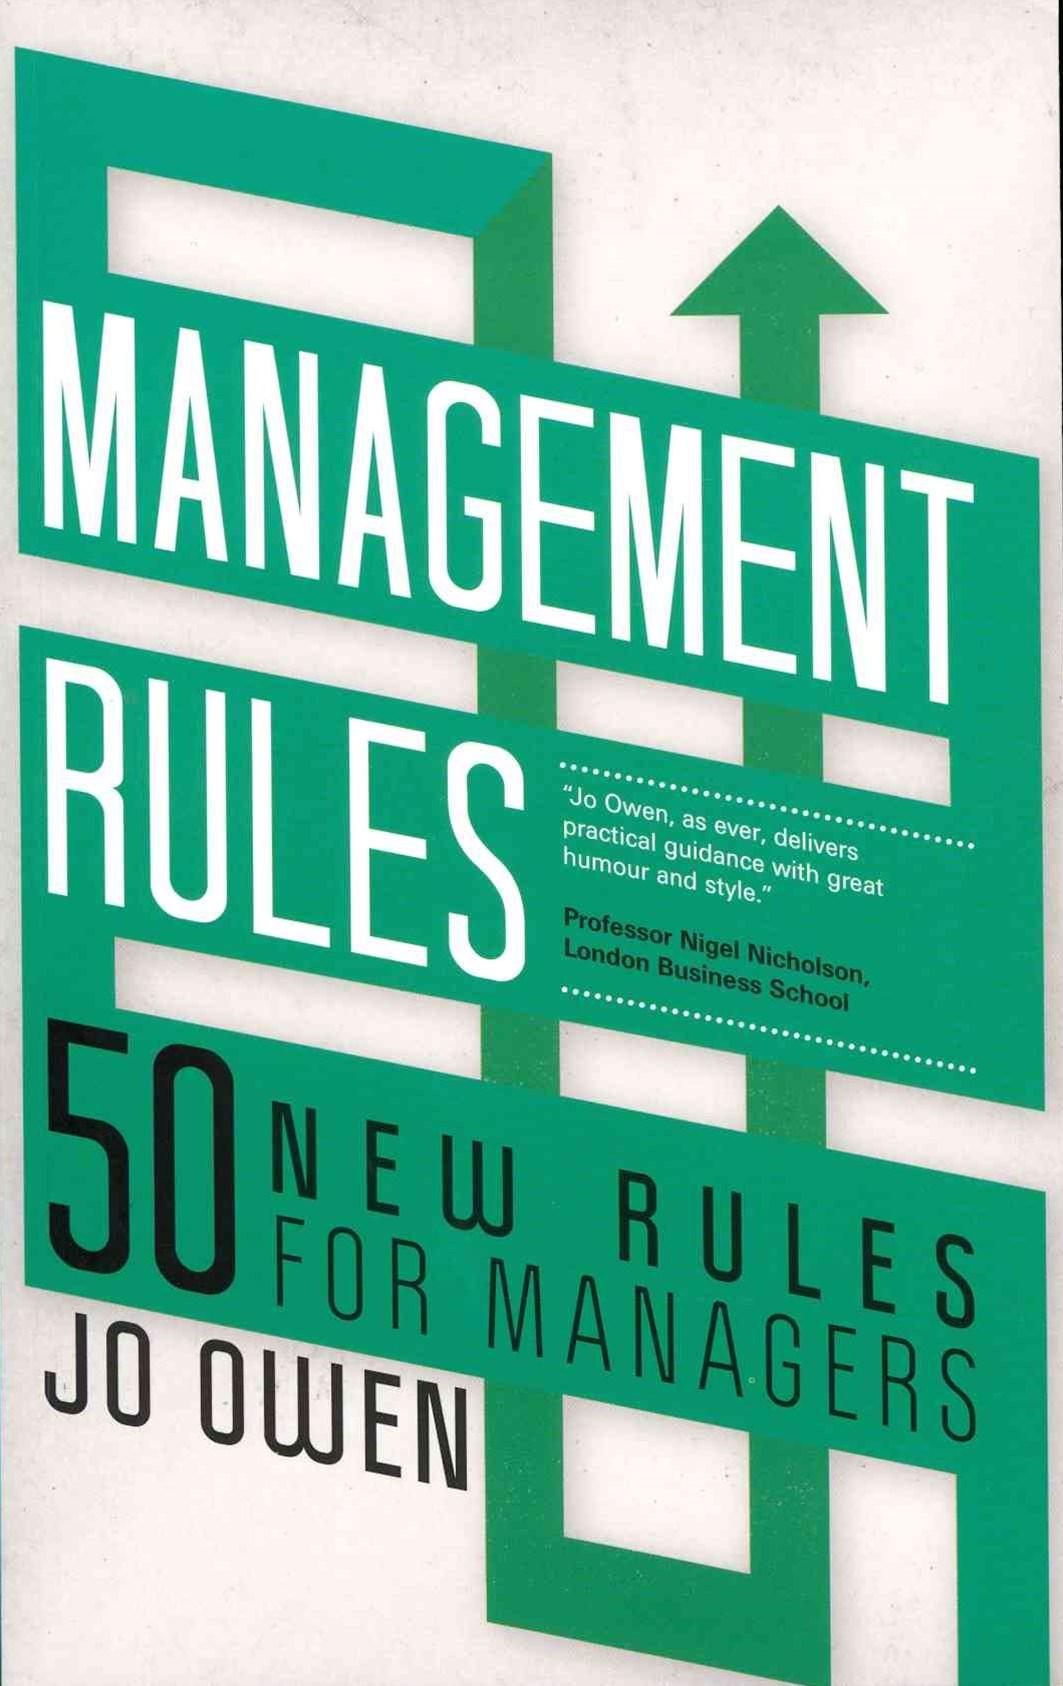 Management Rules - 50 New Rules for Managers